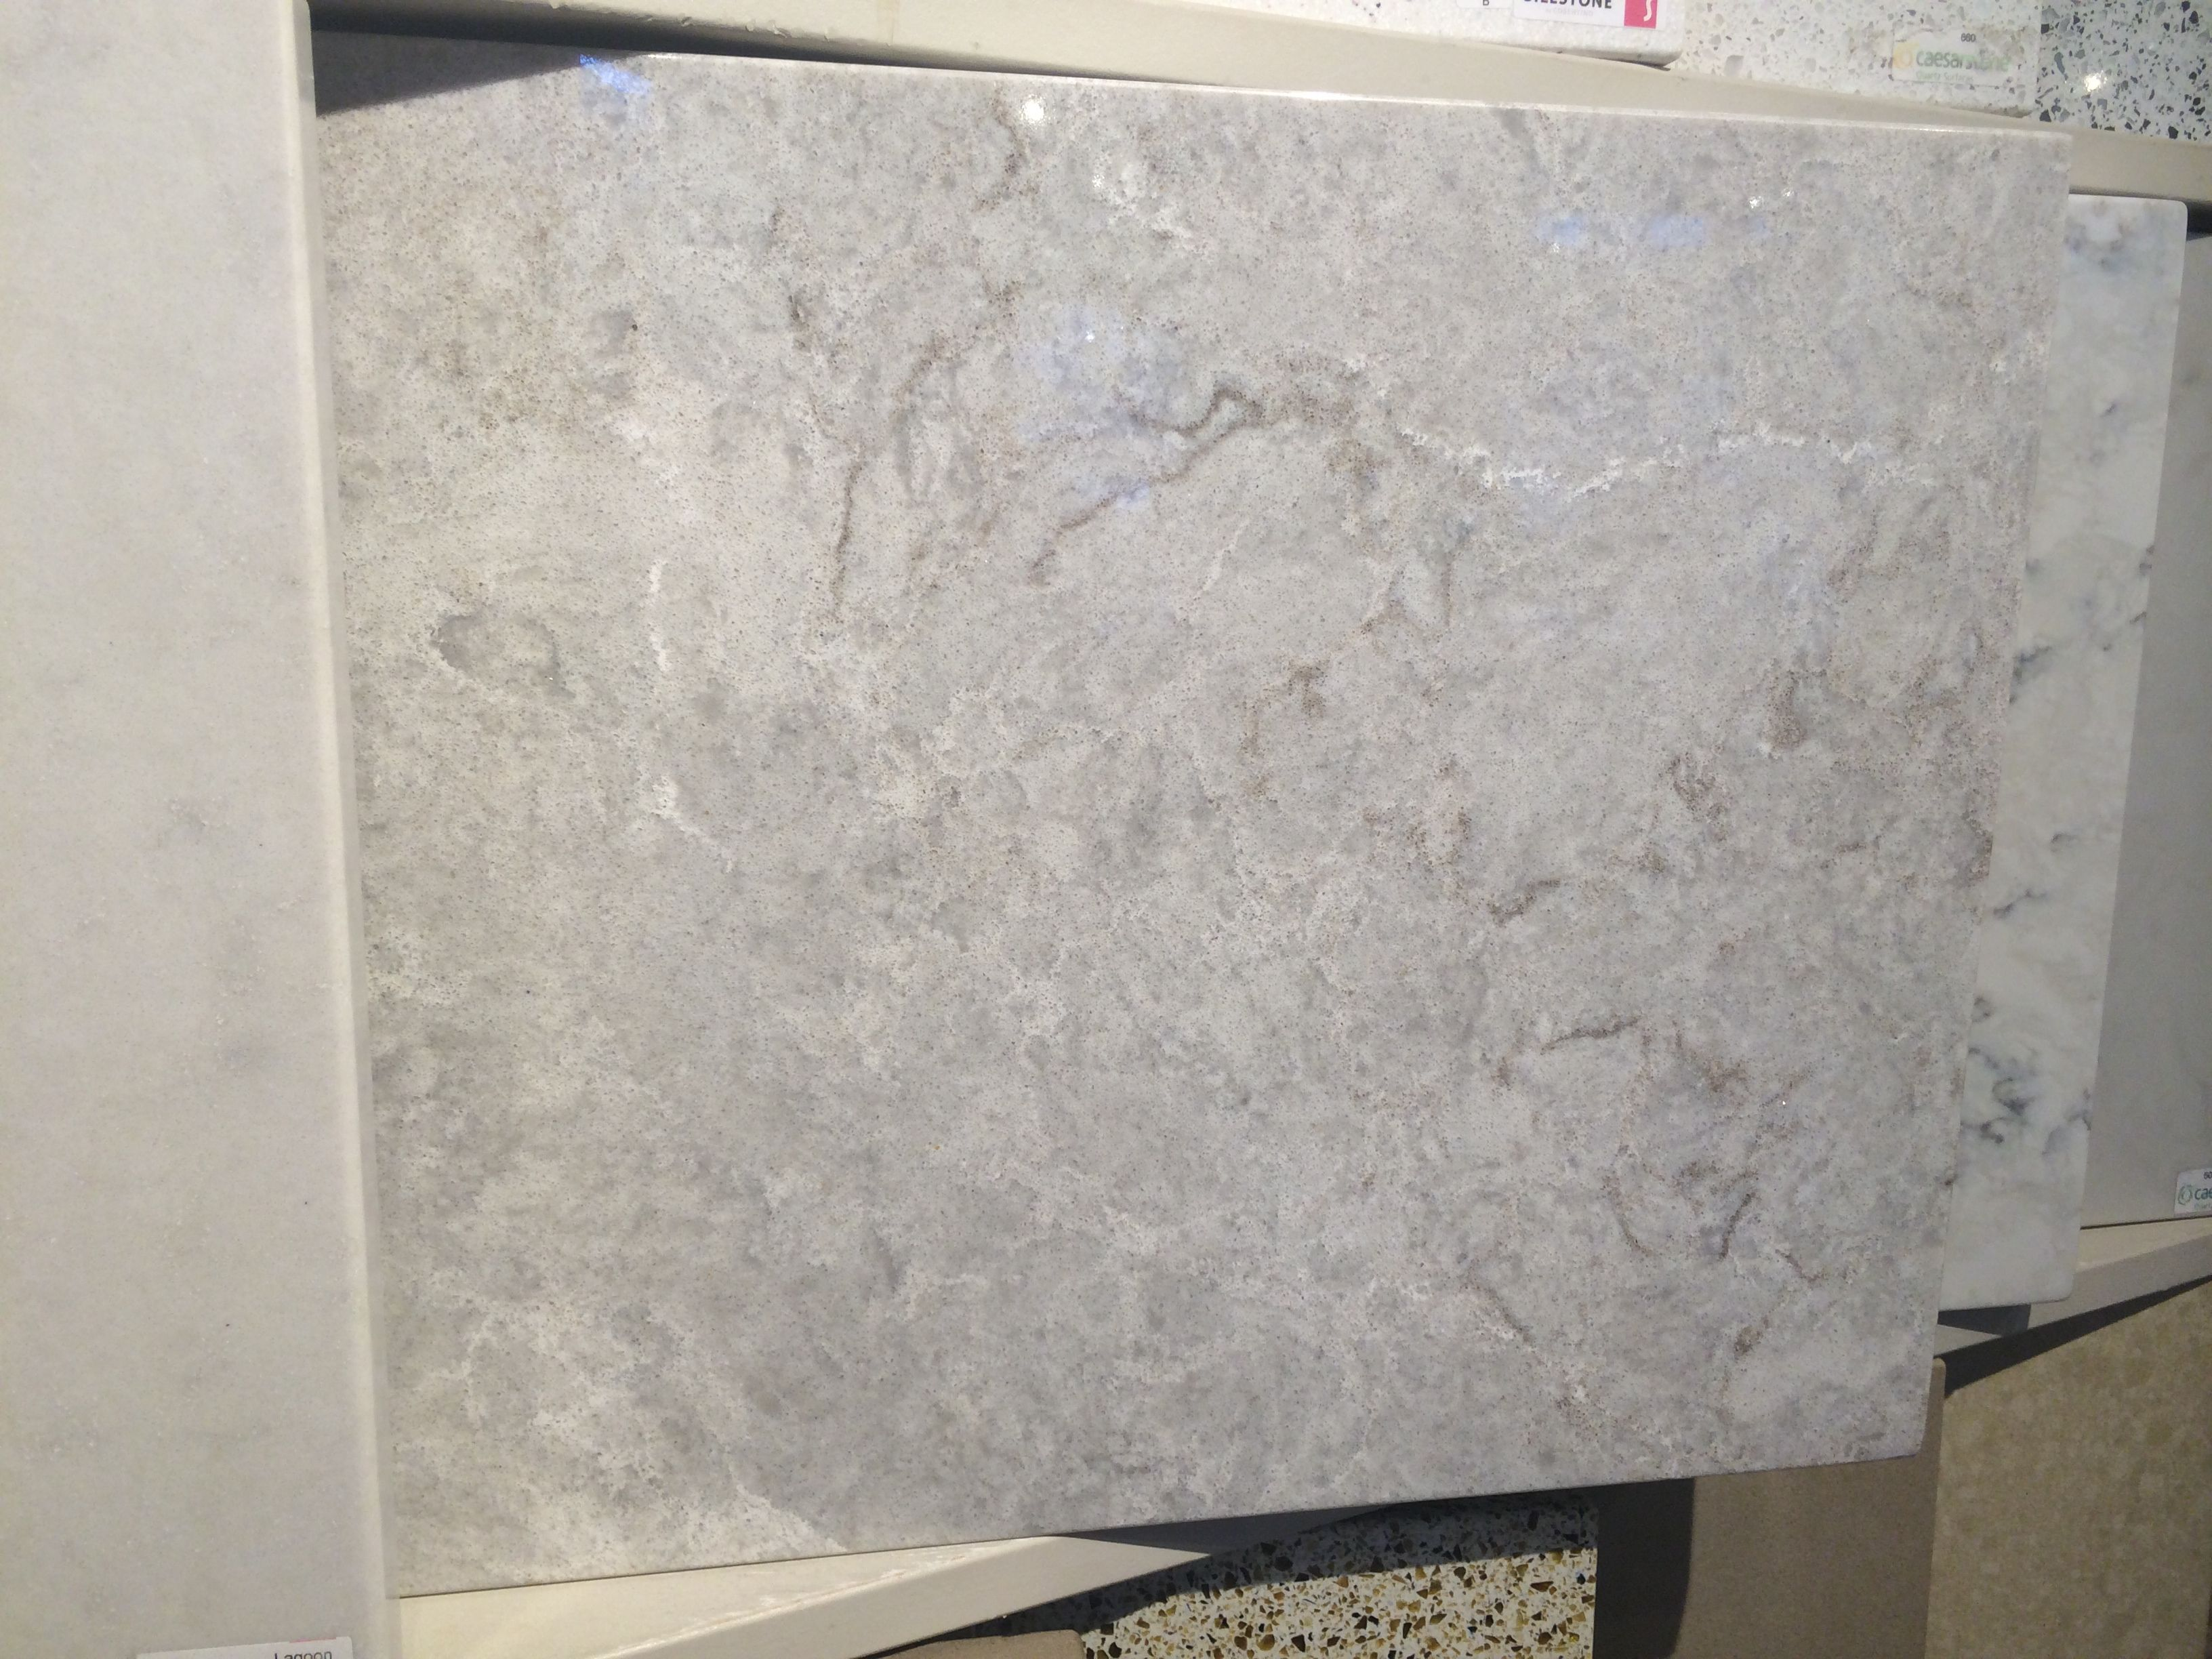 Caesarstone Quartz Bianco Drift 6131 In 2019 Quartz